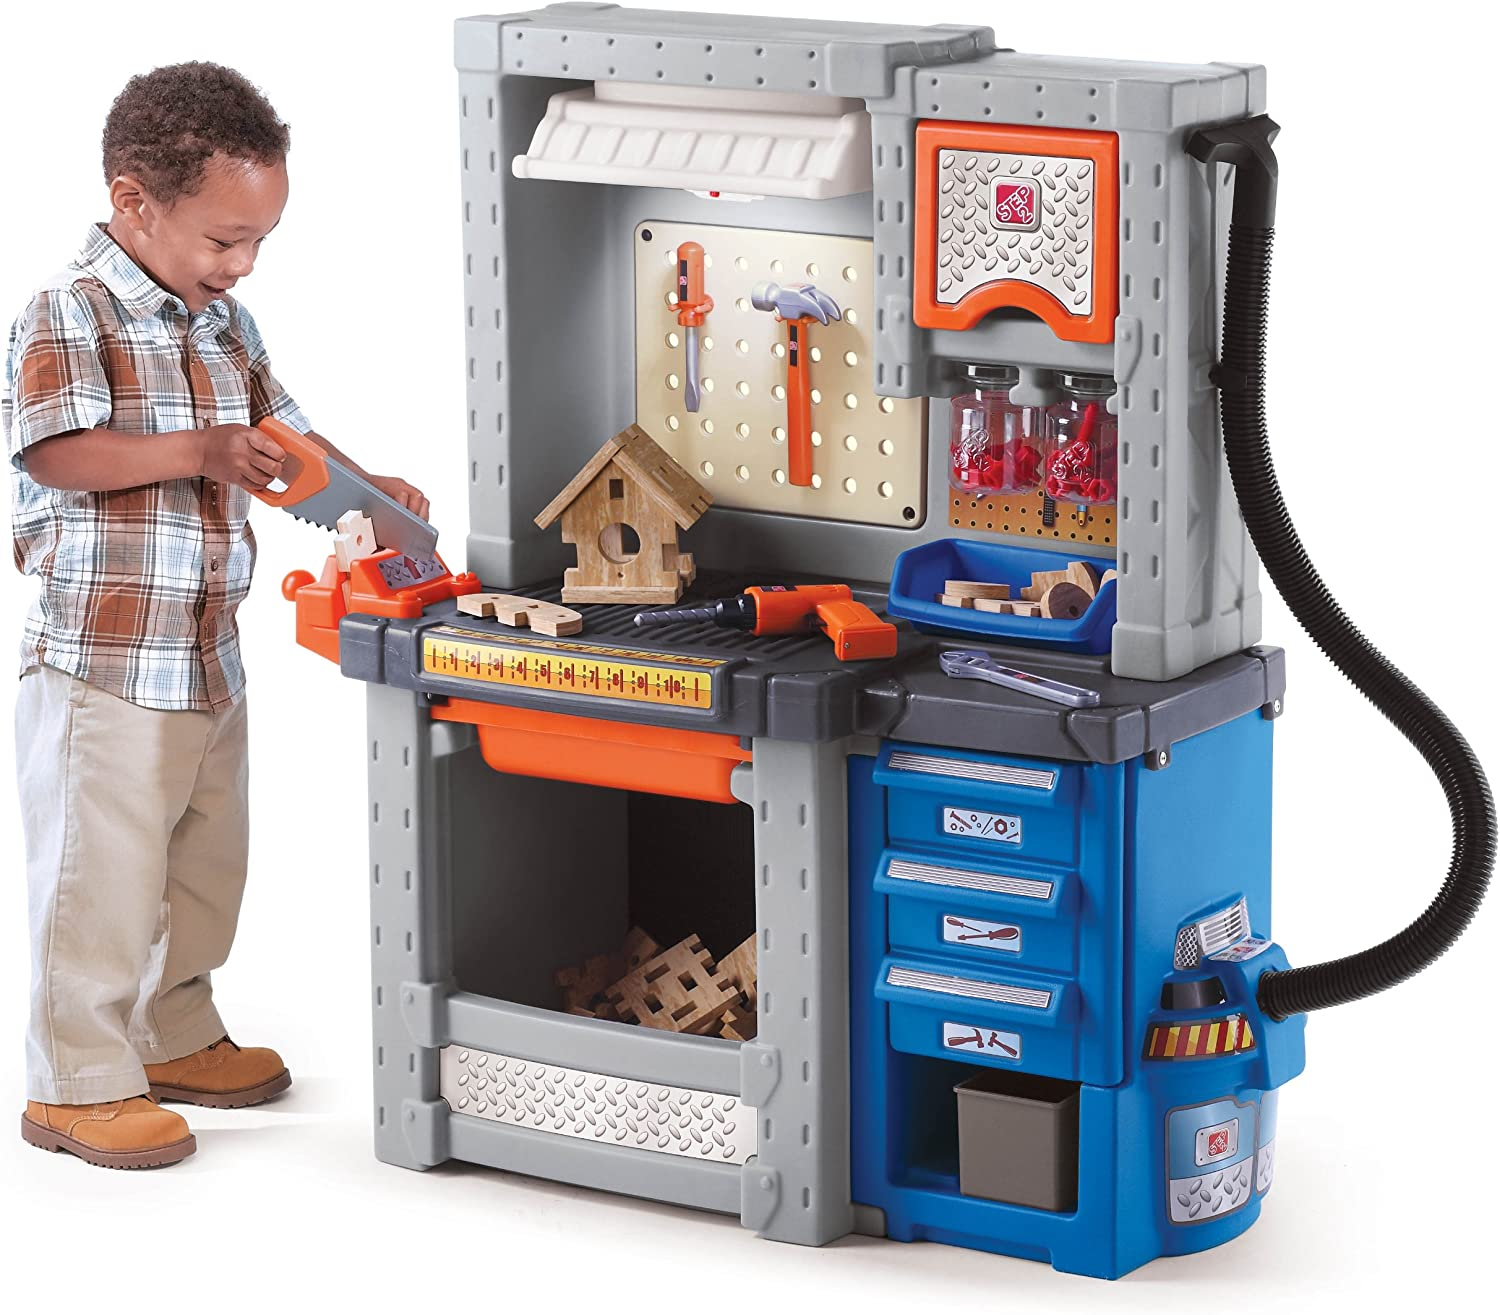 Top 14 Best Kids Tool Bench (2020 Reviews & Buying Guide) 5